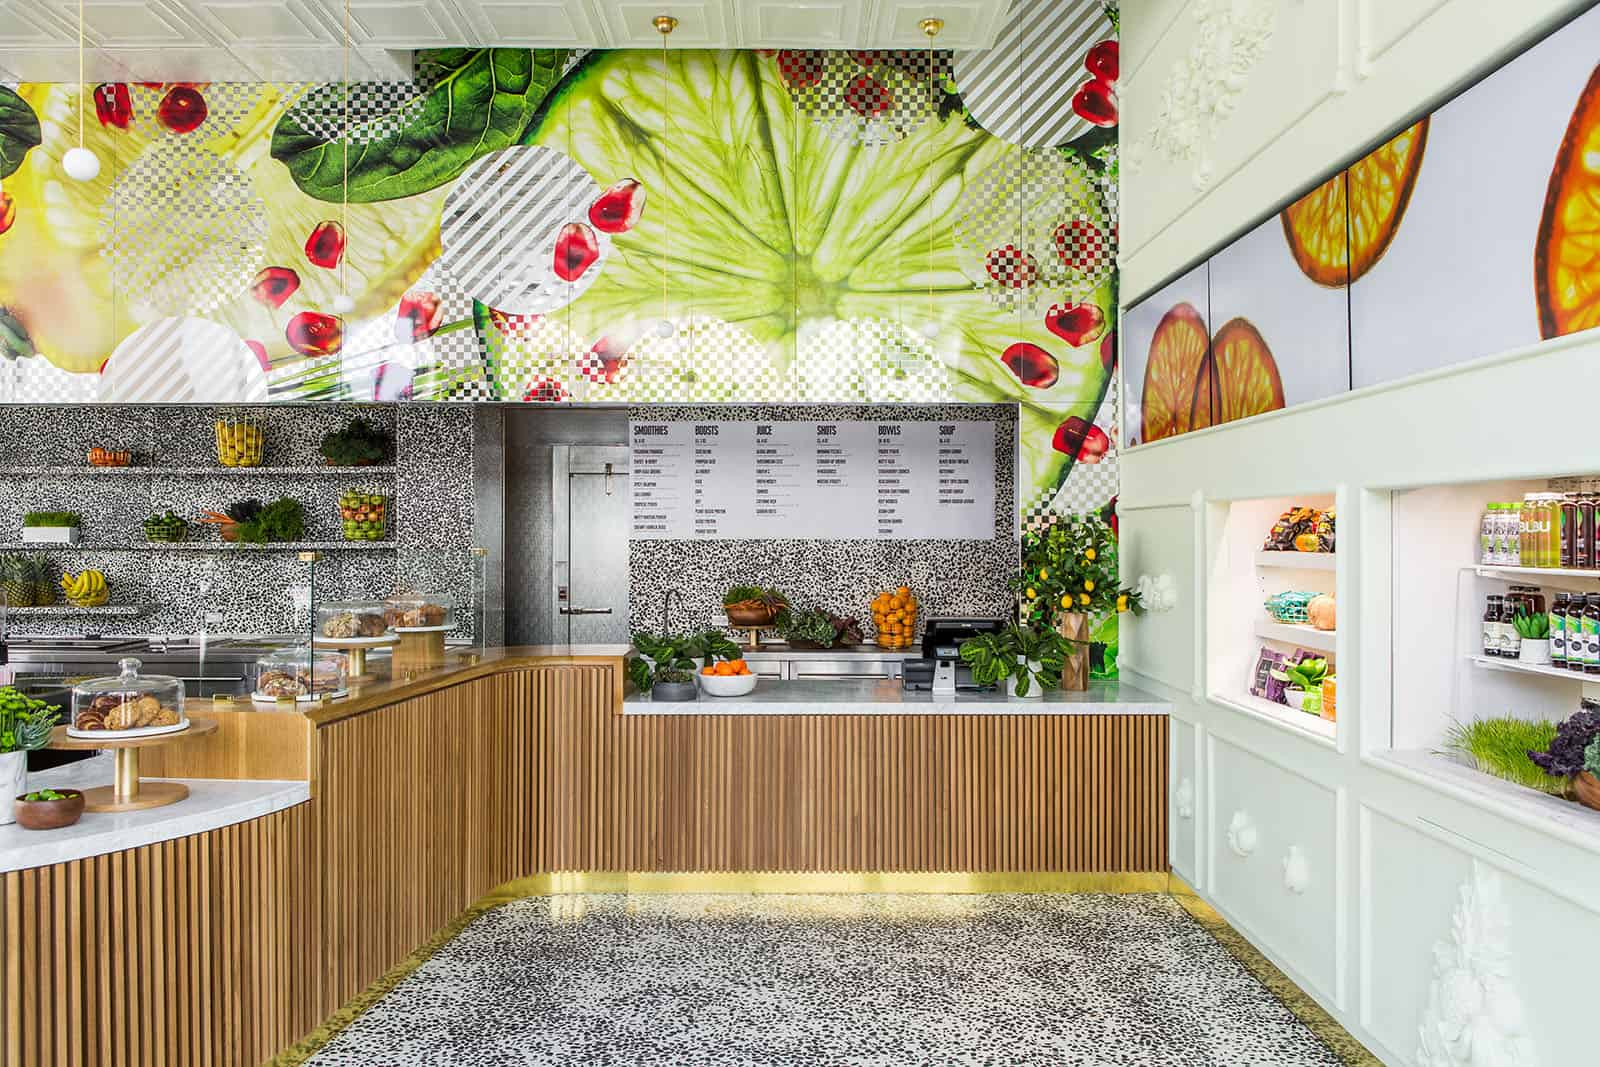 Interior Designs of Fruit Juice Shop